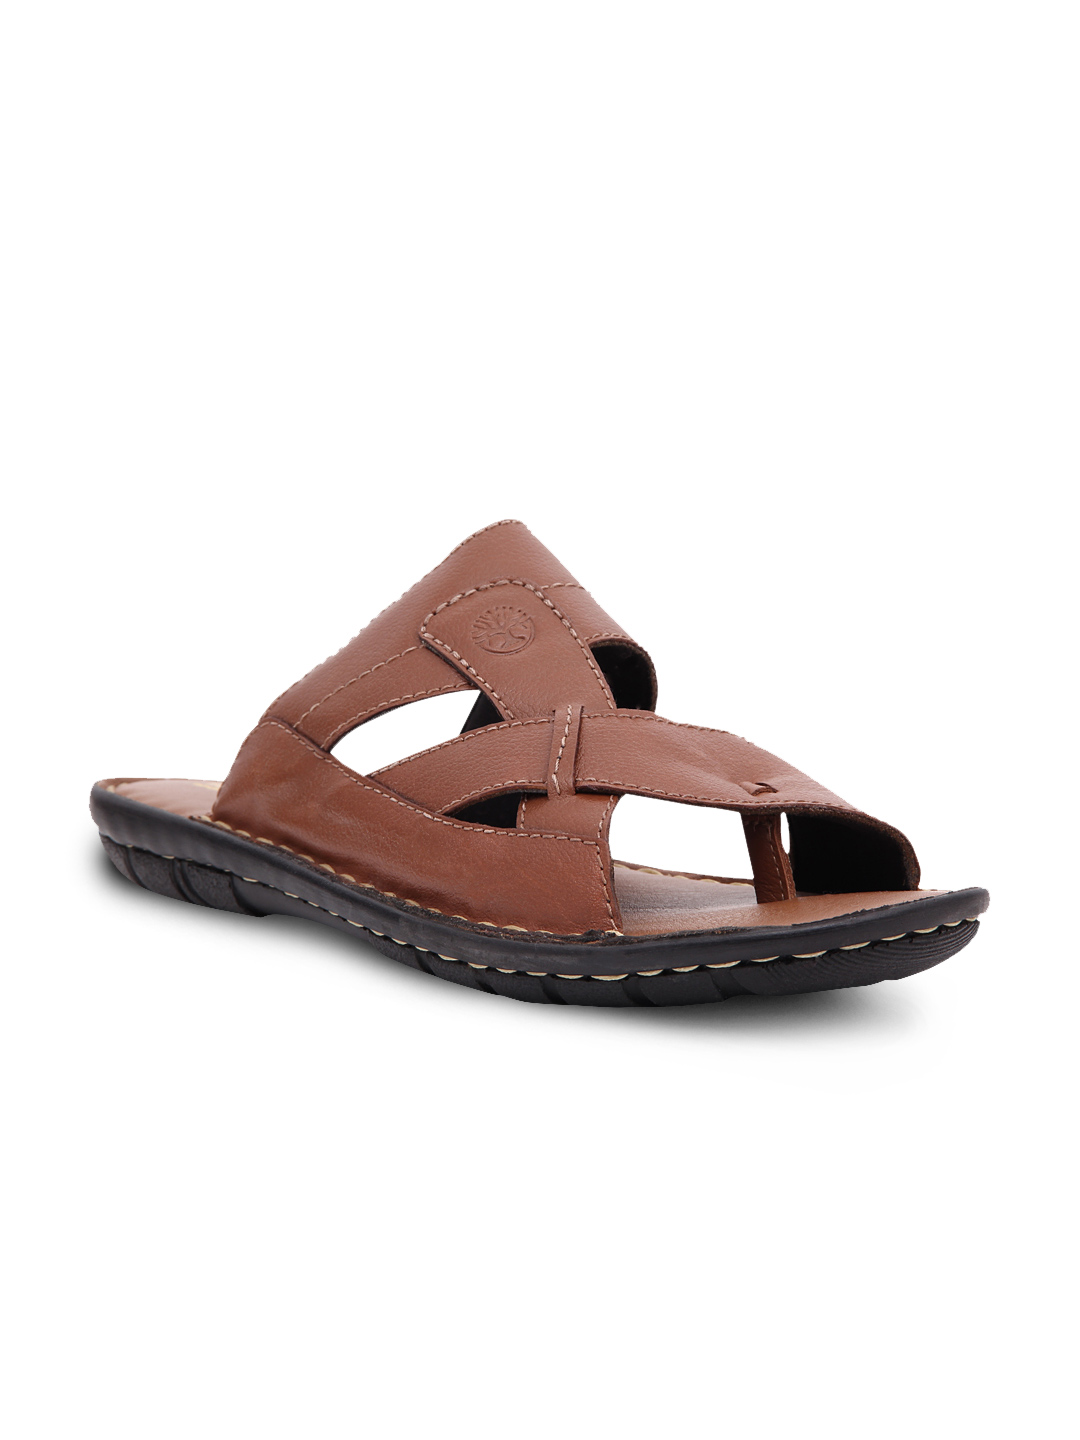 Ventoland Men Tan Brown Leather Sandals